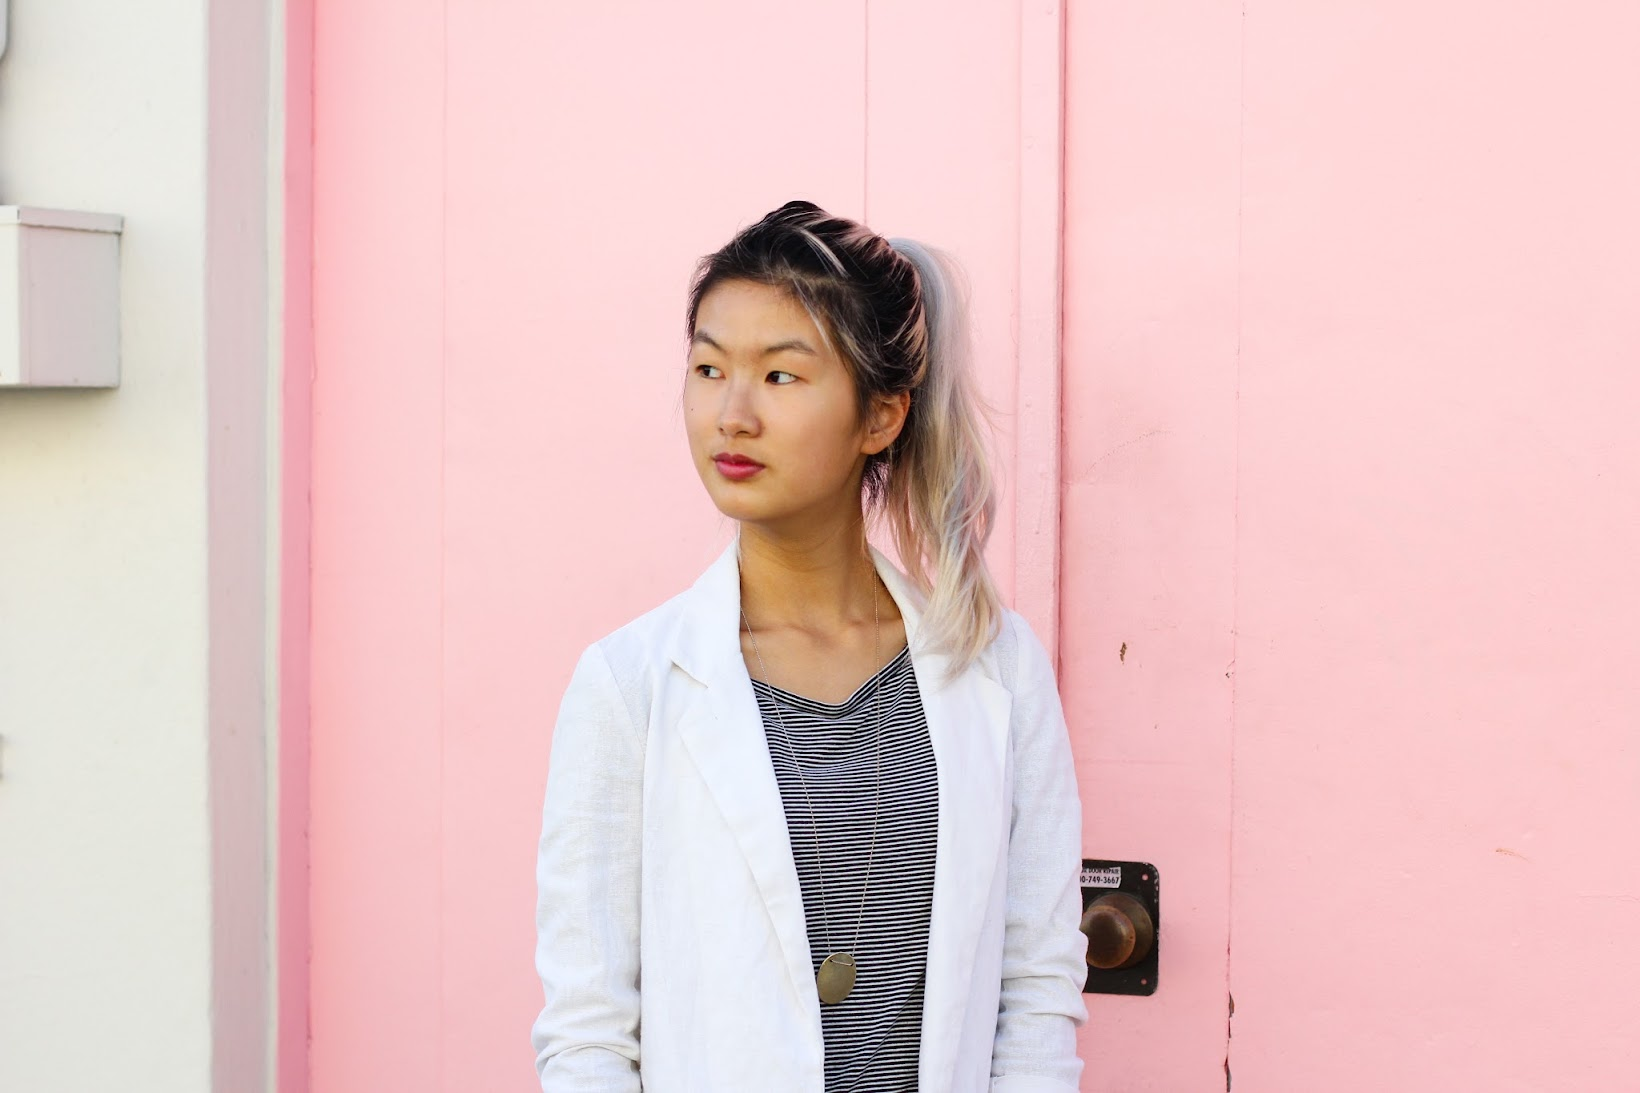 Juxtaposed mens-wear against a pink wall